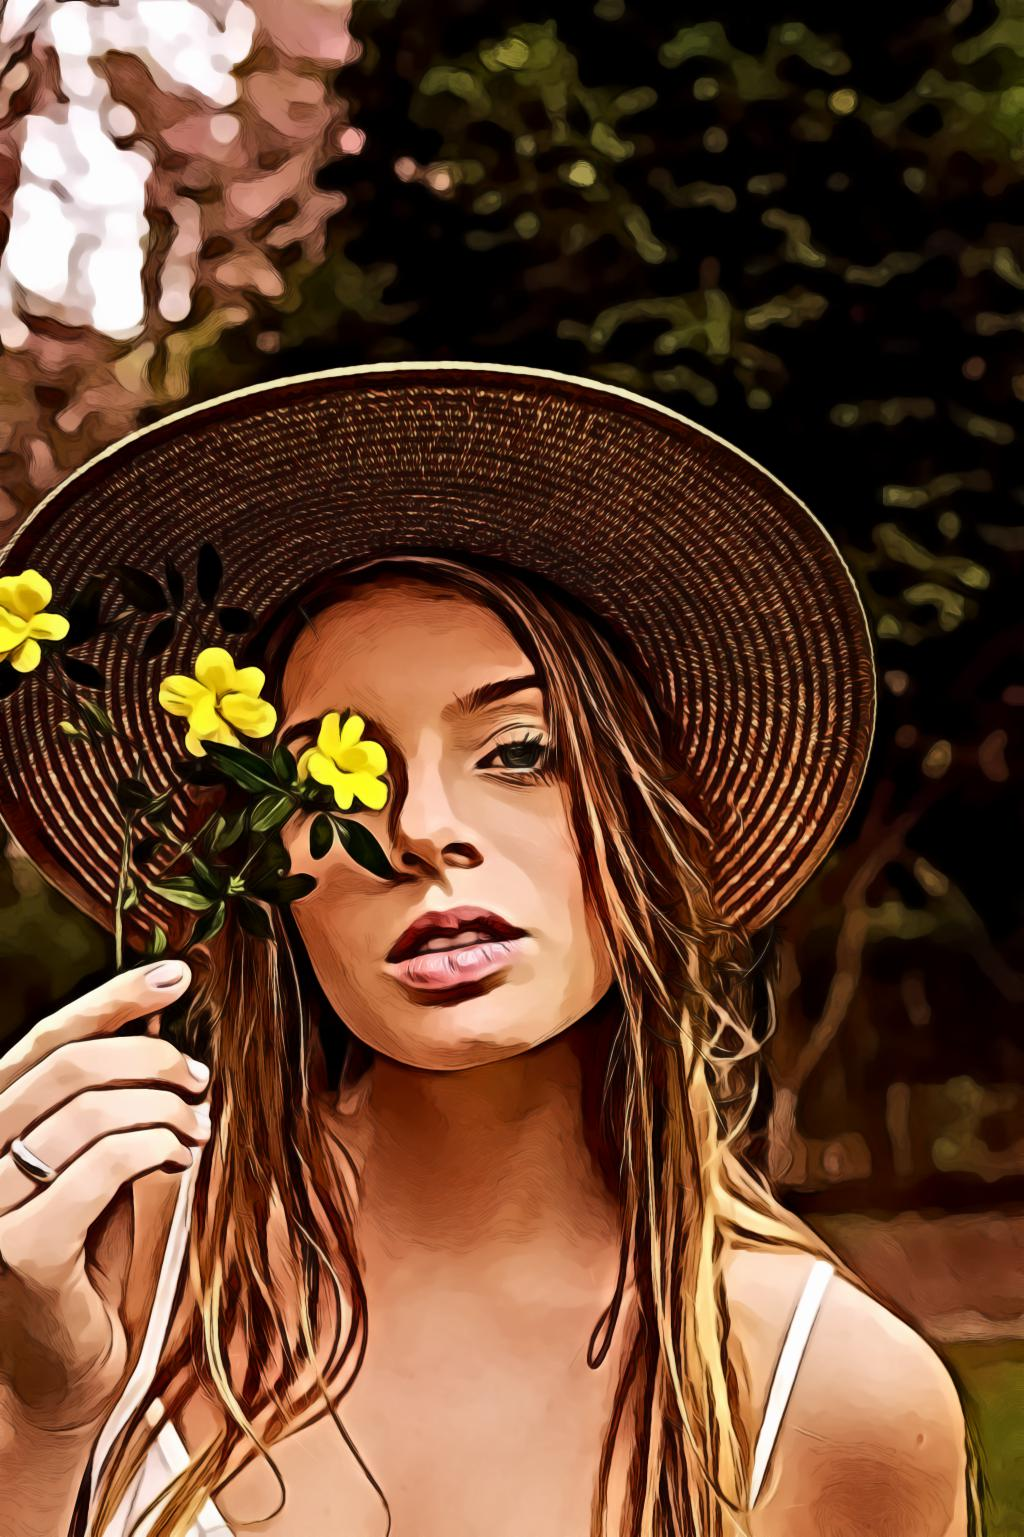 Woman in Wearing Straw Hat Holding Yellow Flowers Near Her Face